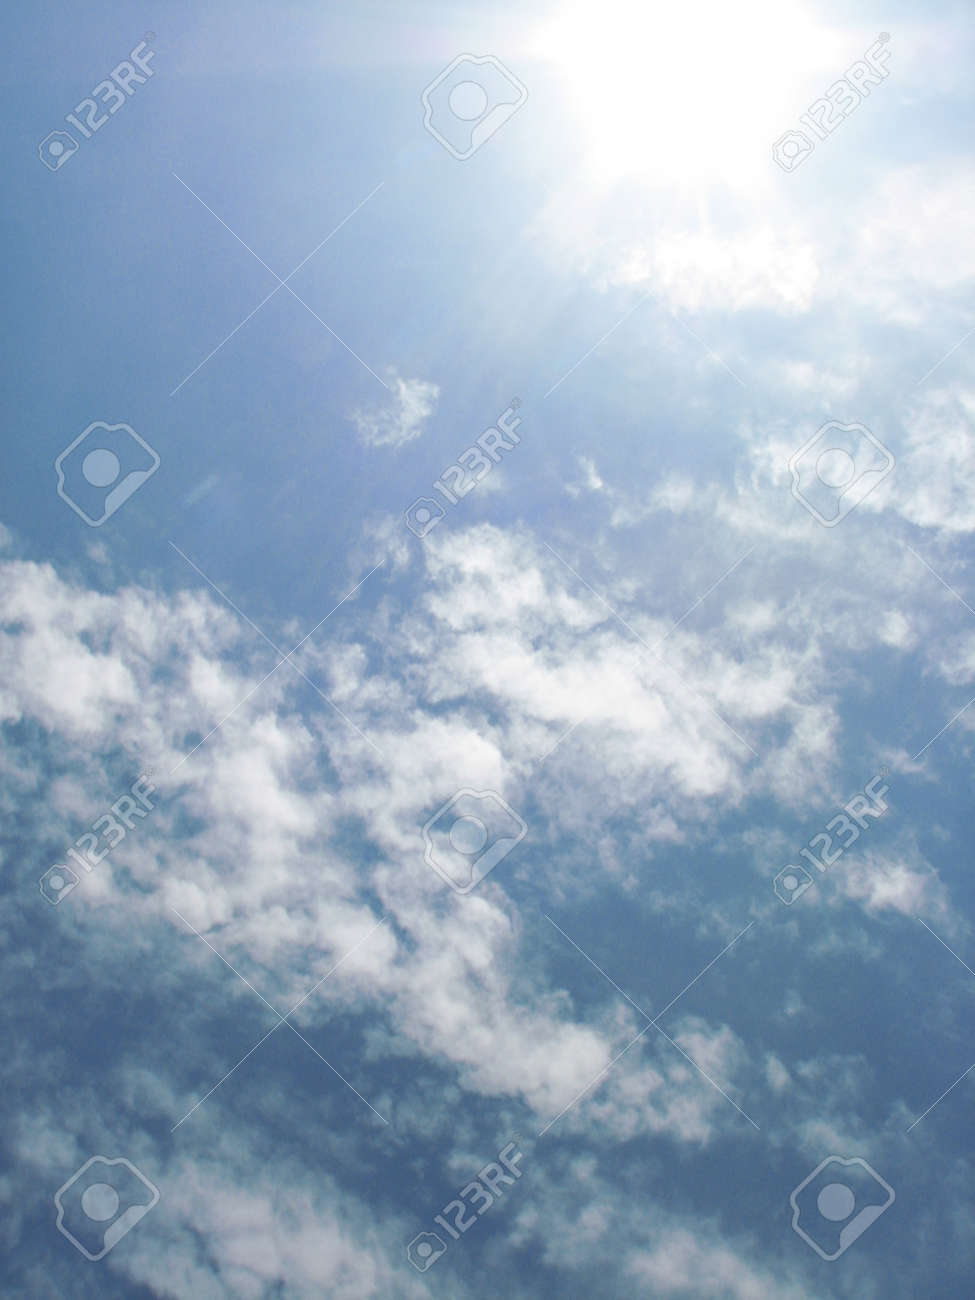 The Sky Is A Symbol Of Dreams Stock Photo Picture And Royalty Free